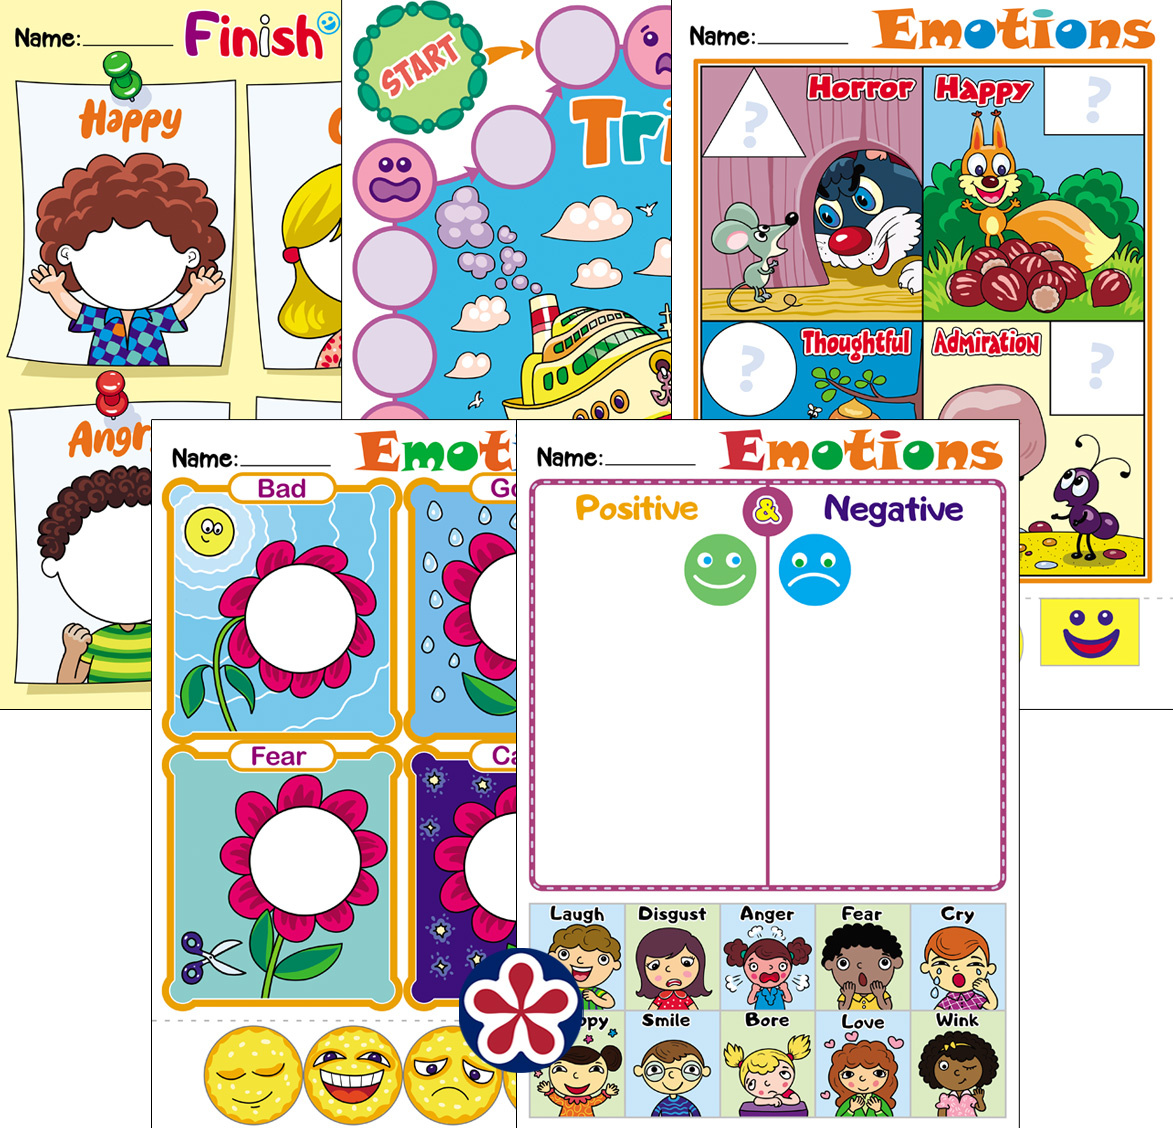 Emotion-Themed Worksheets for Kids